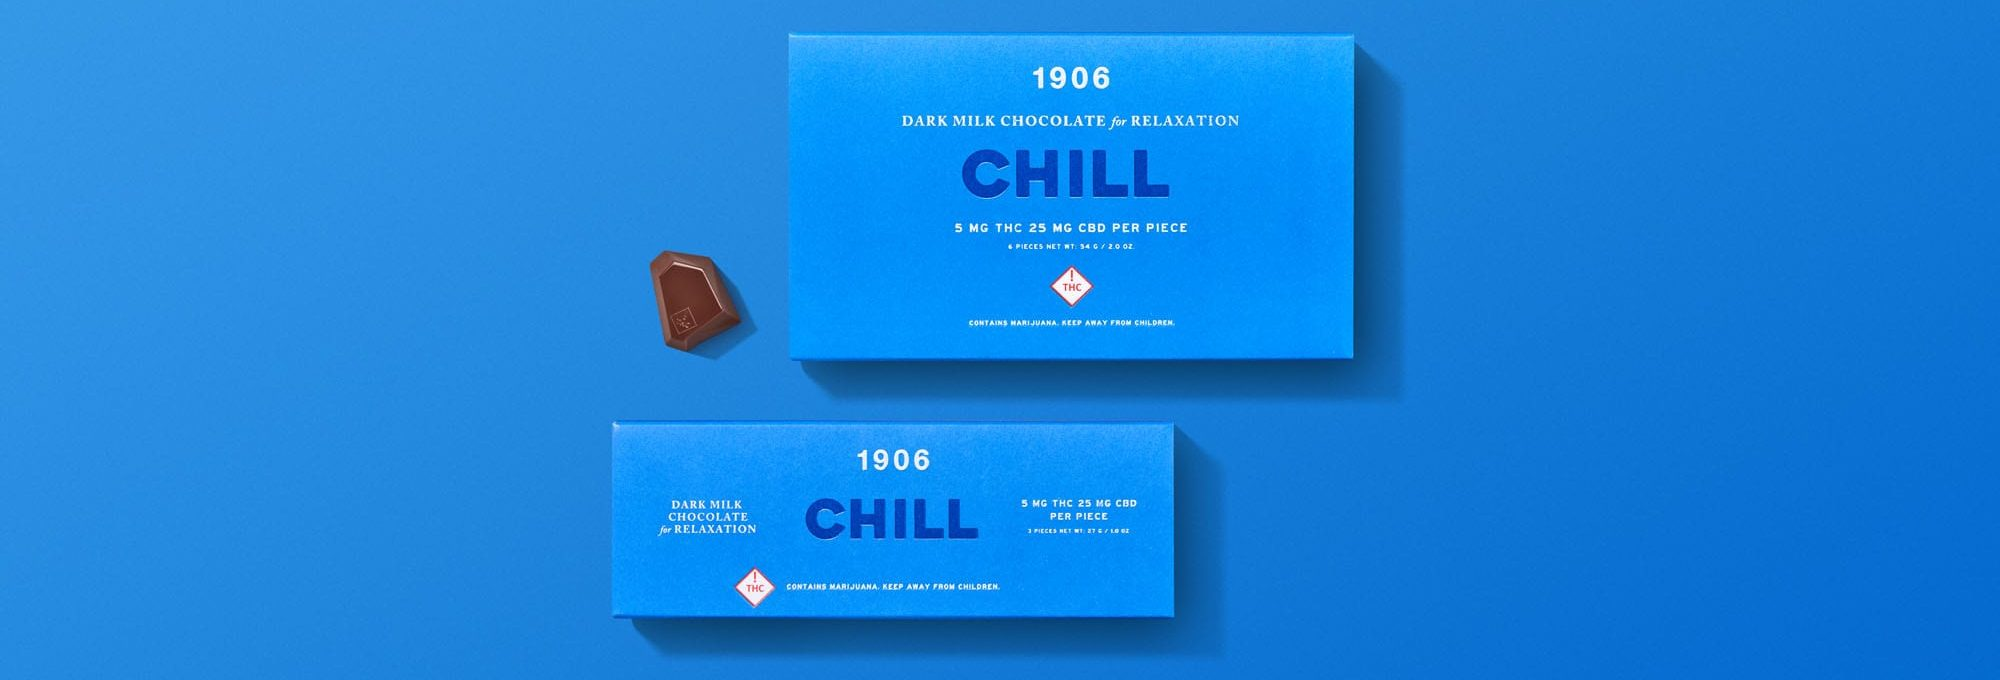 1906 Chill Experience